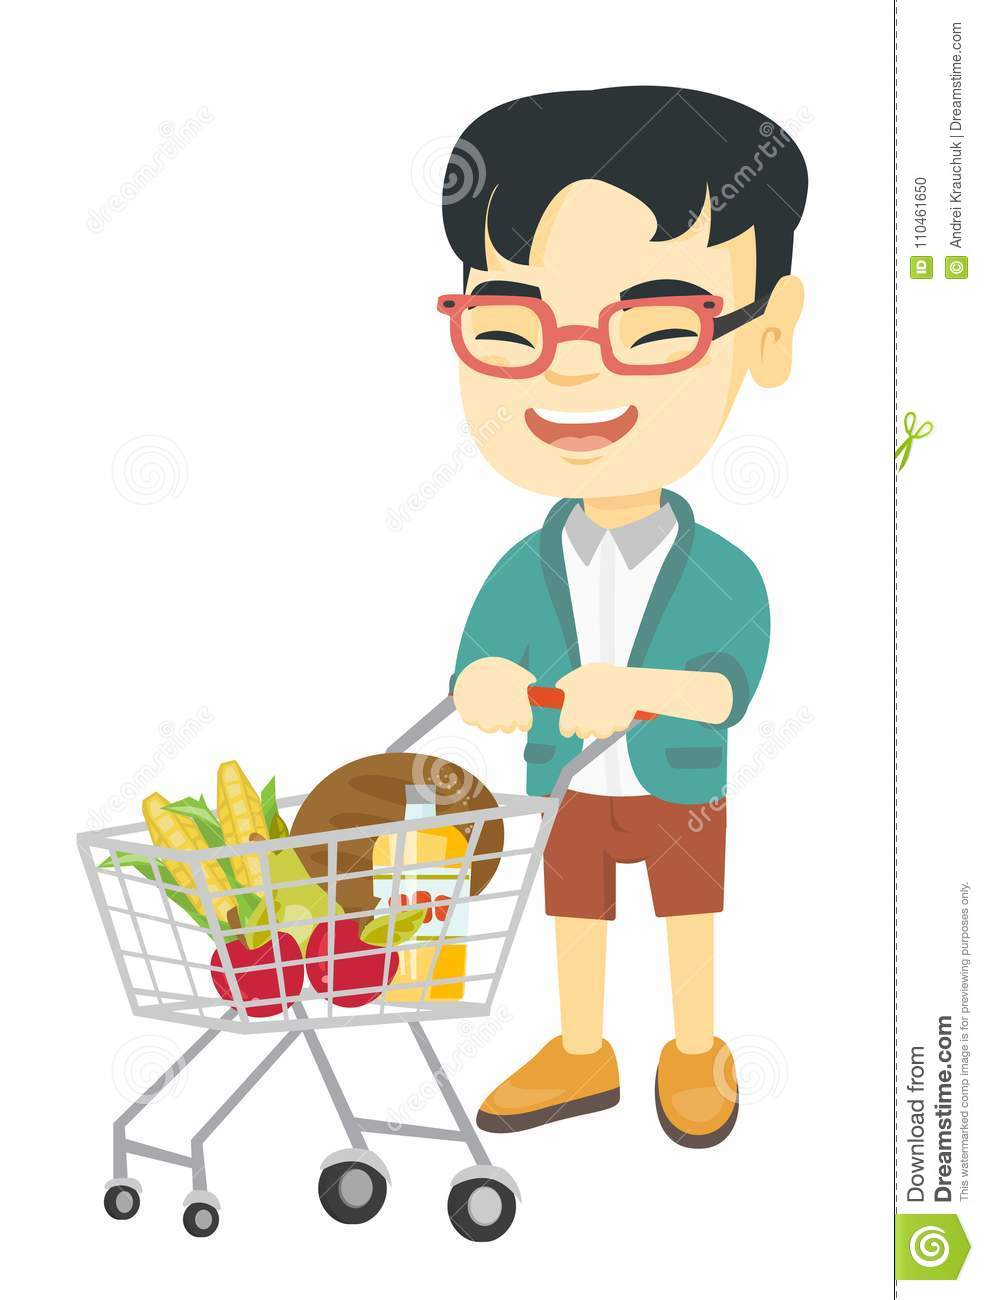 Boy Pushing Shopping Trolley Stock Illustrations 75 Boy Pushing Shopping Trolley Stock Illustrations Vectors Clipart Dreamstime